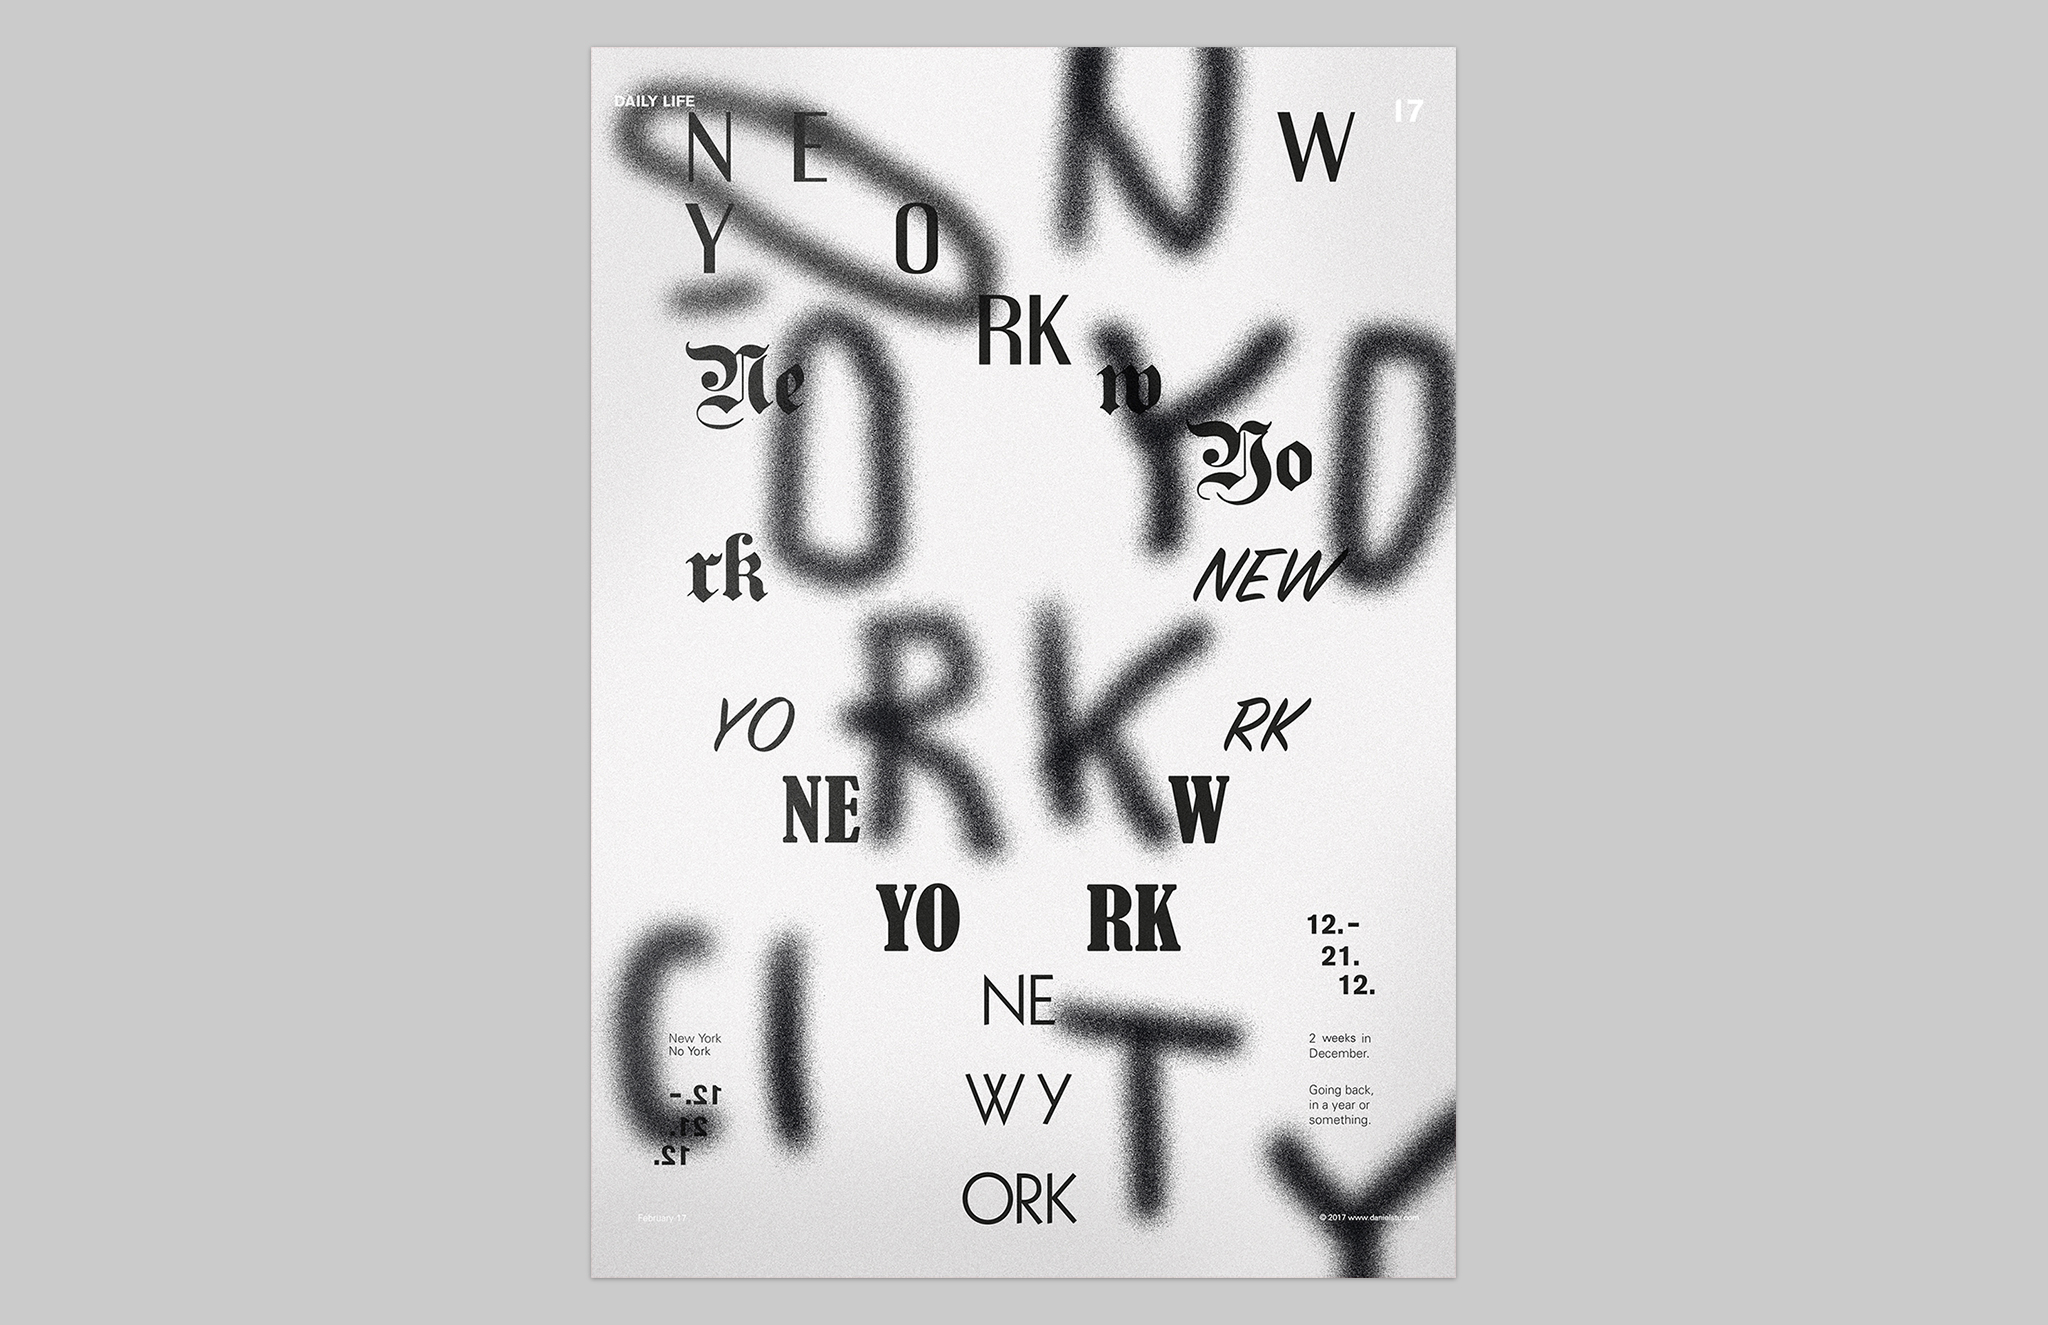 Daniel-Stuhlpfarrer_Visual-Communication_Graphic-Design_Poster_No-New-York-City_Overview